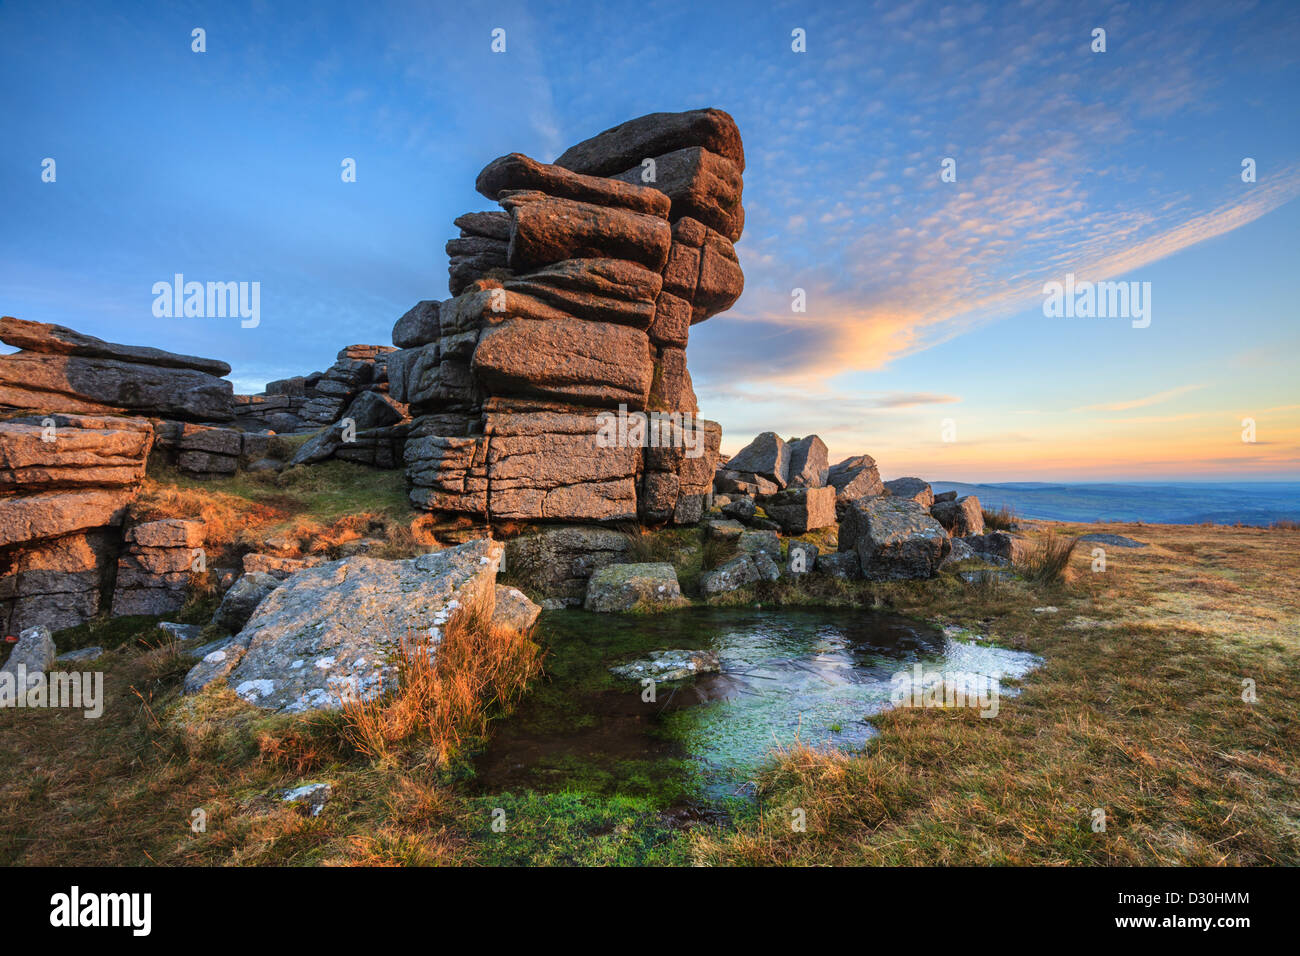 Great Staple Tor in the Dartmoor National Park, captured shortly before sunset on a winters afternoon. - Stock Image